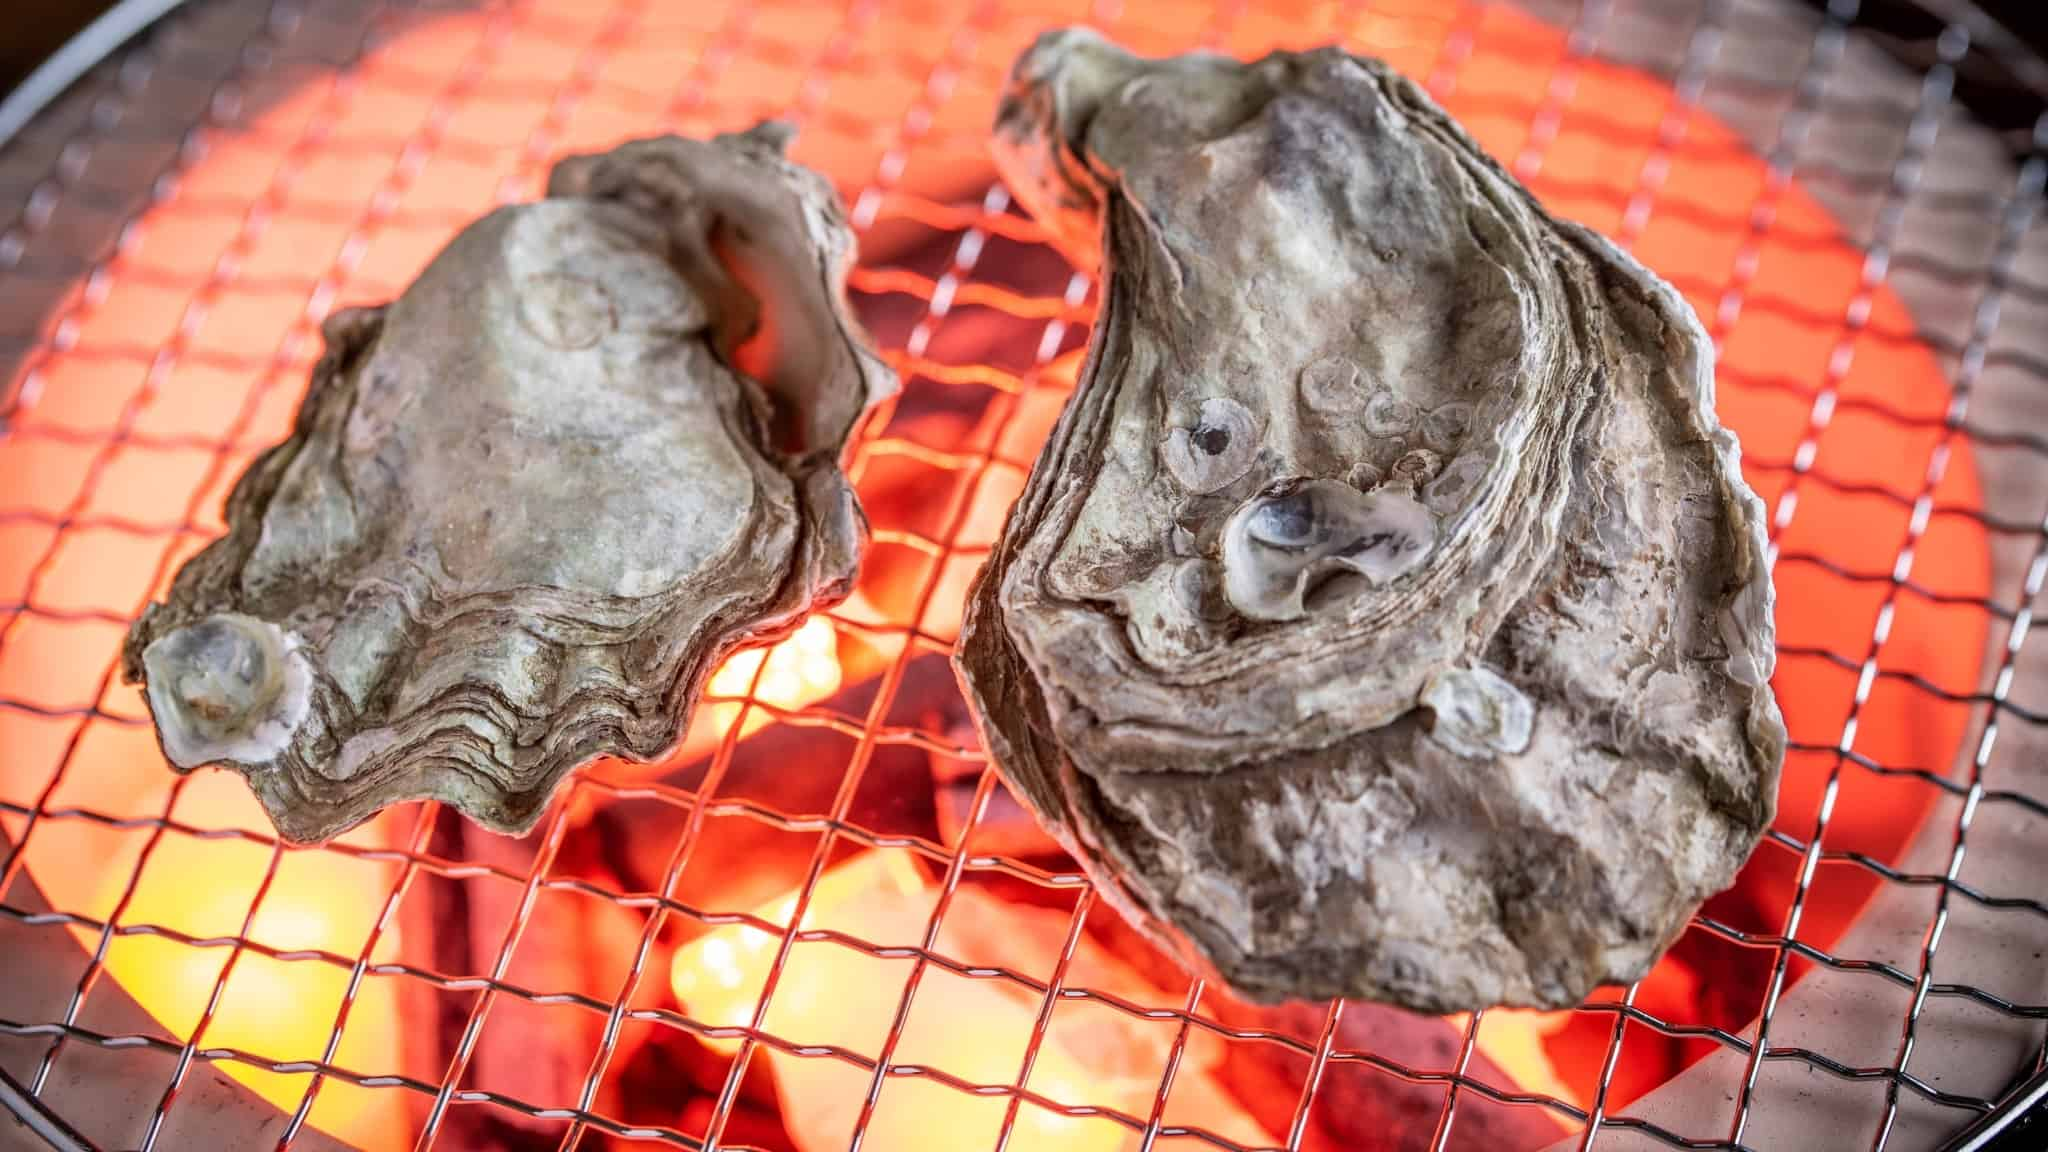 Grilling oysters on a round shichirin grill